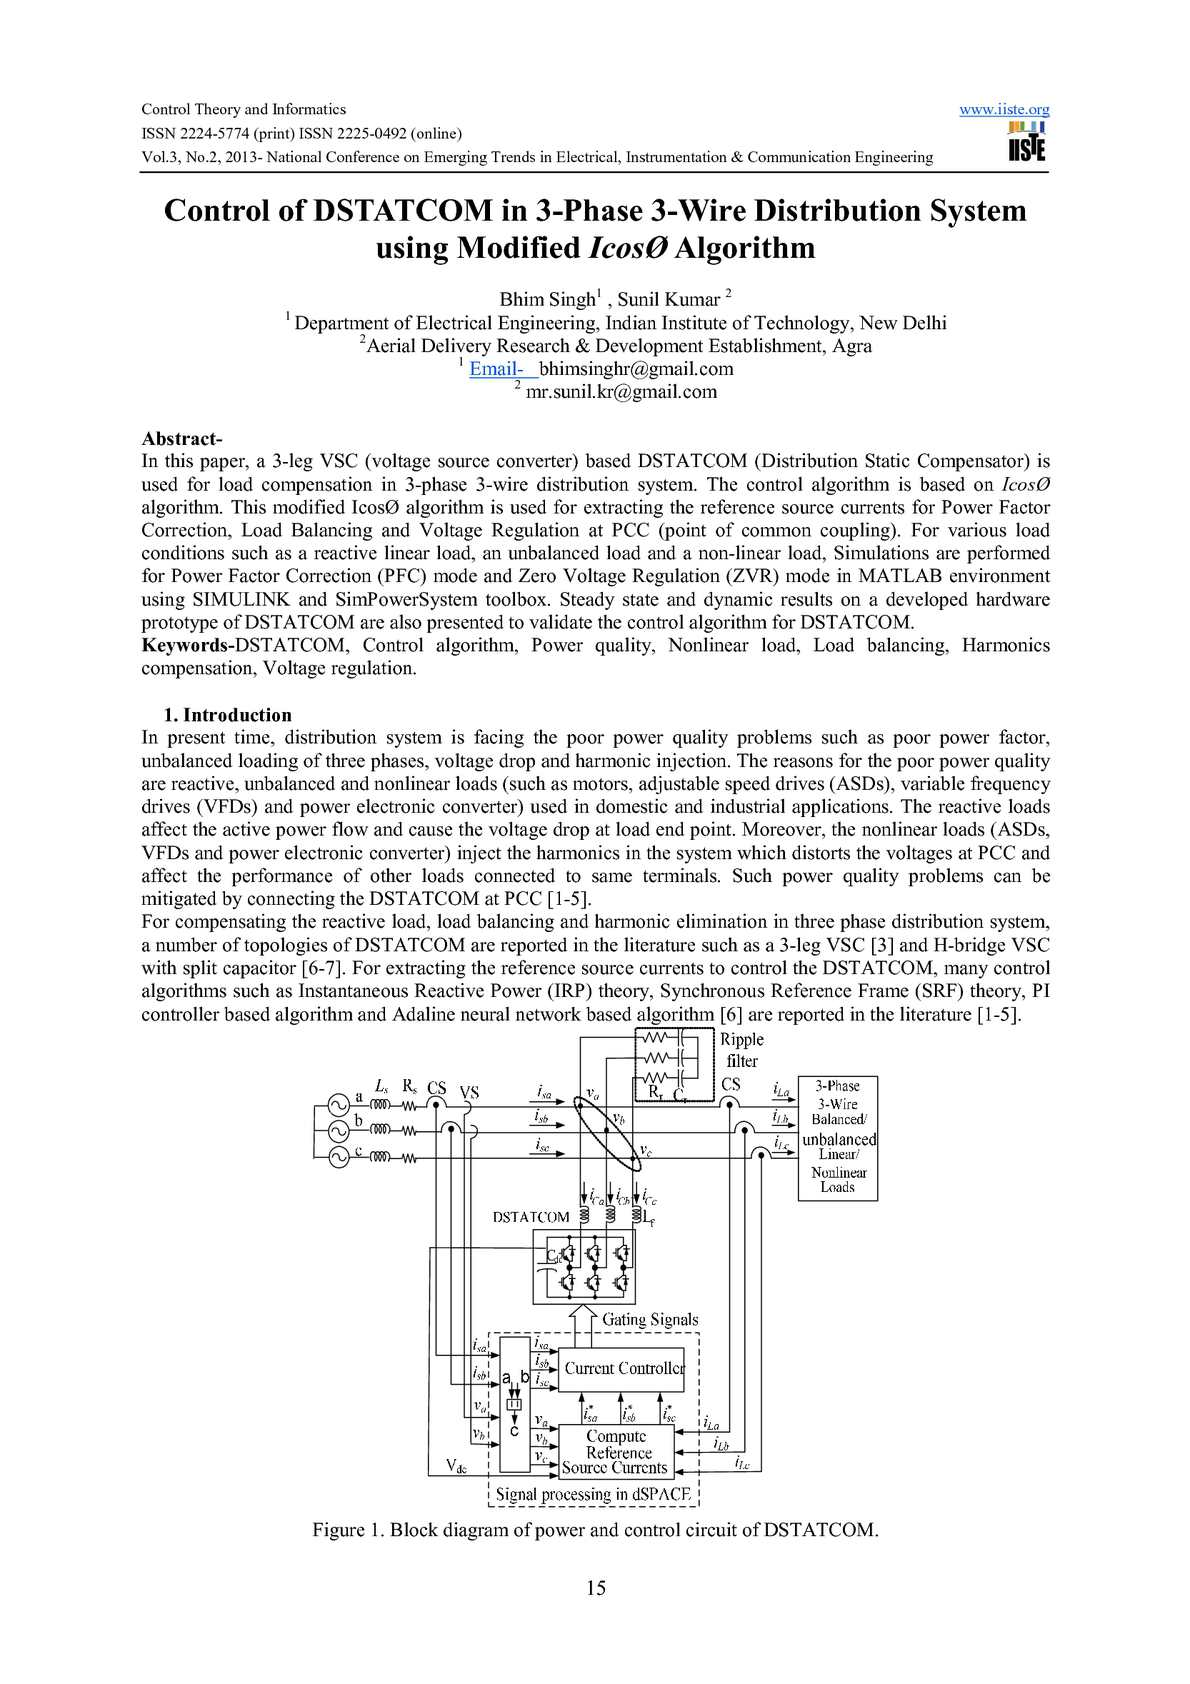 hight resolution of control of dstatcom in 3 phase 3 wire distribution system using modified icos algorithm